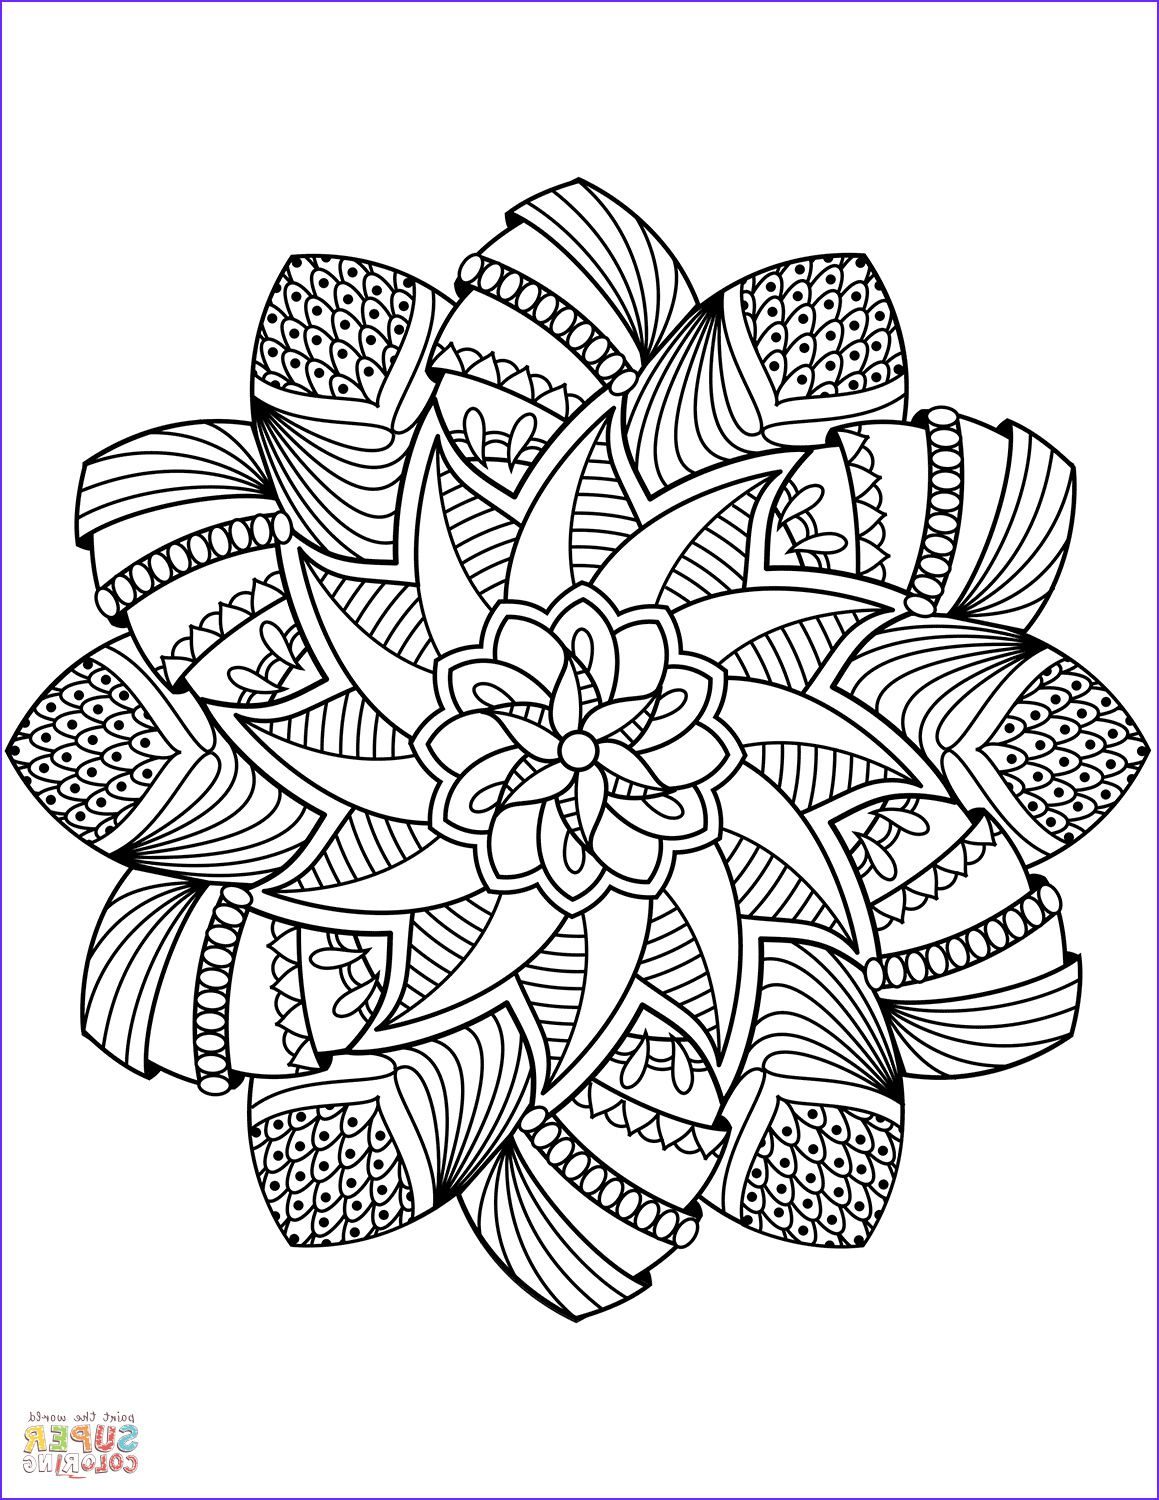 9 Luxury Mandela Adult Coloring Books Collection Printable